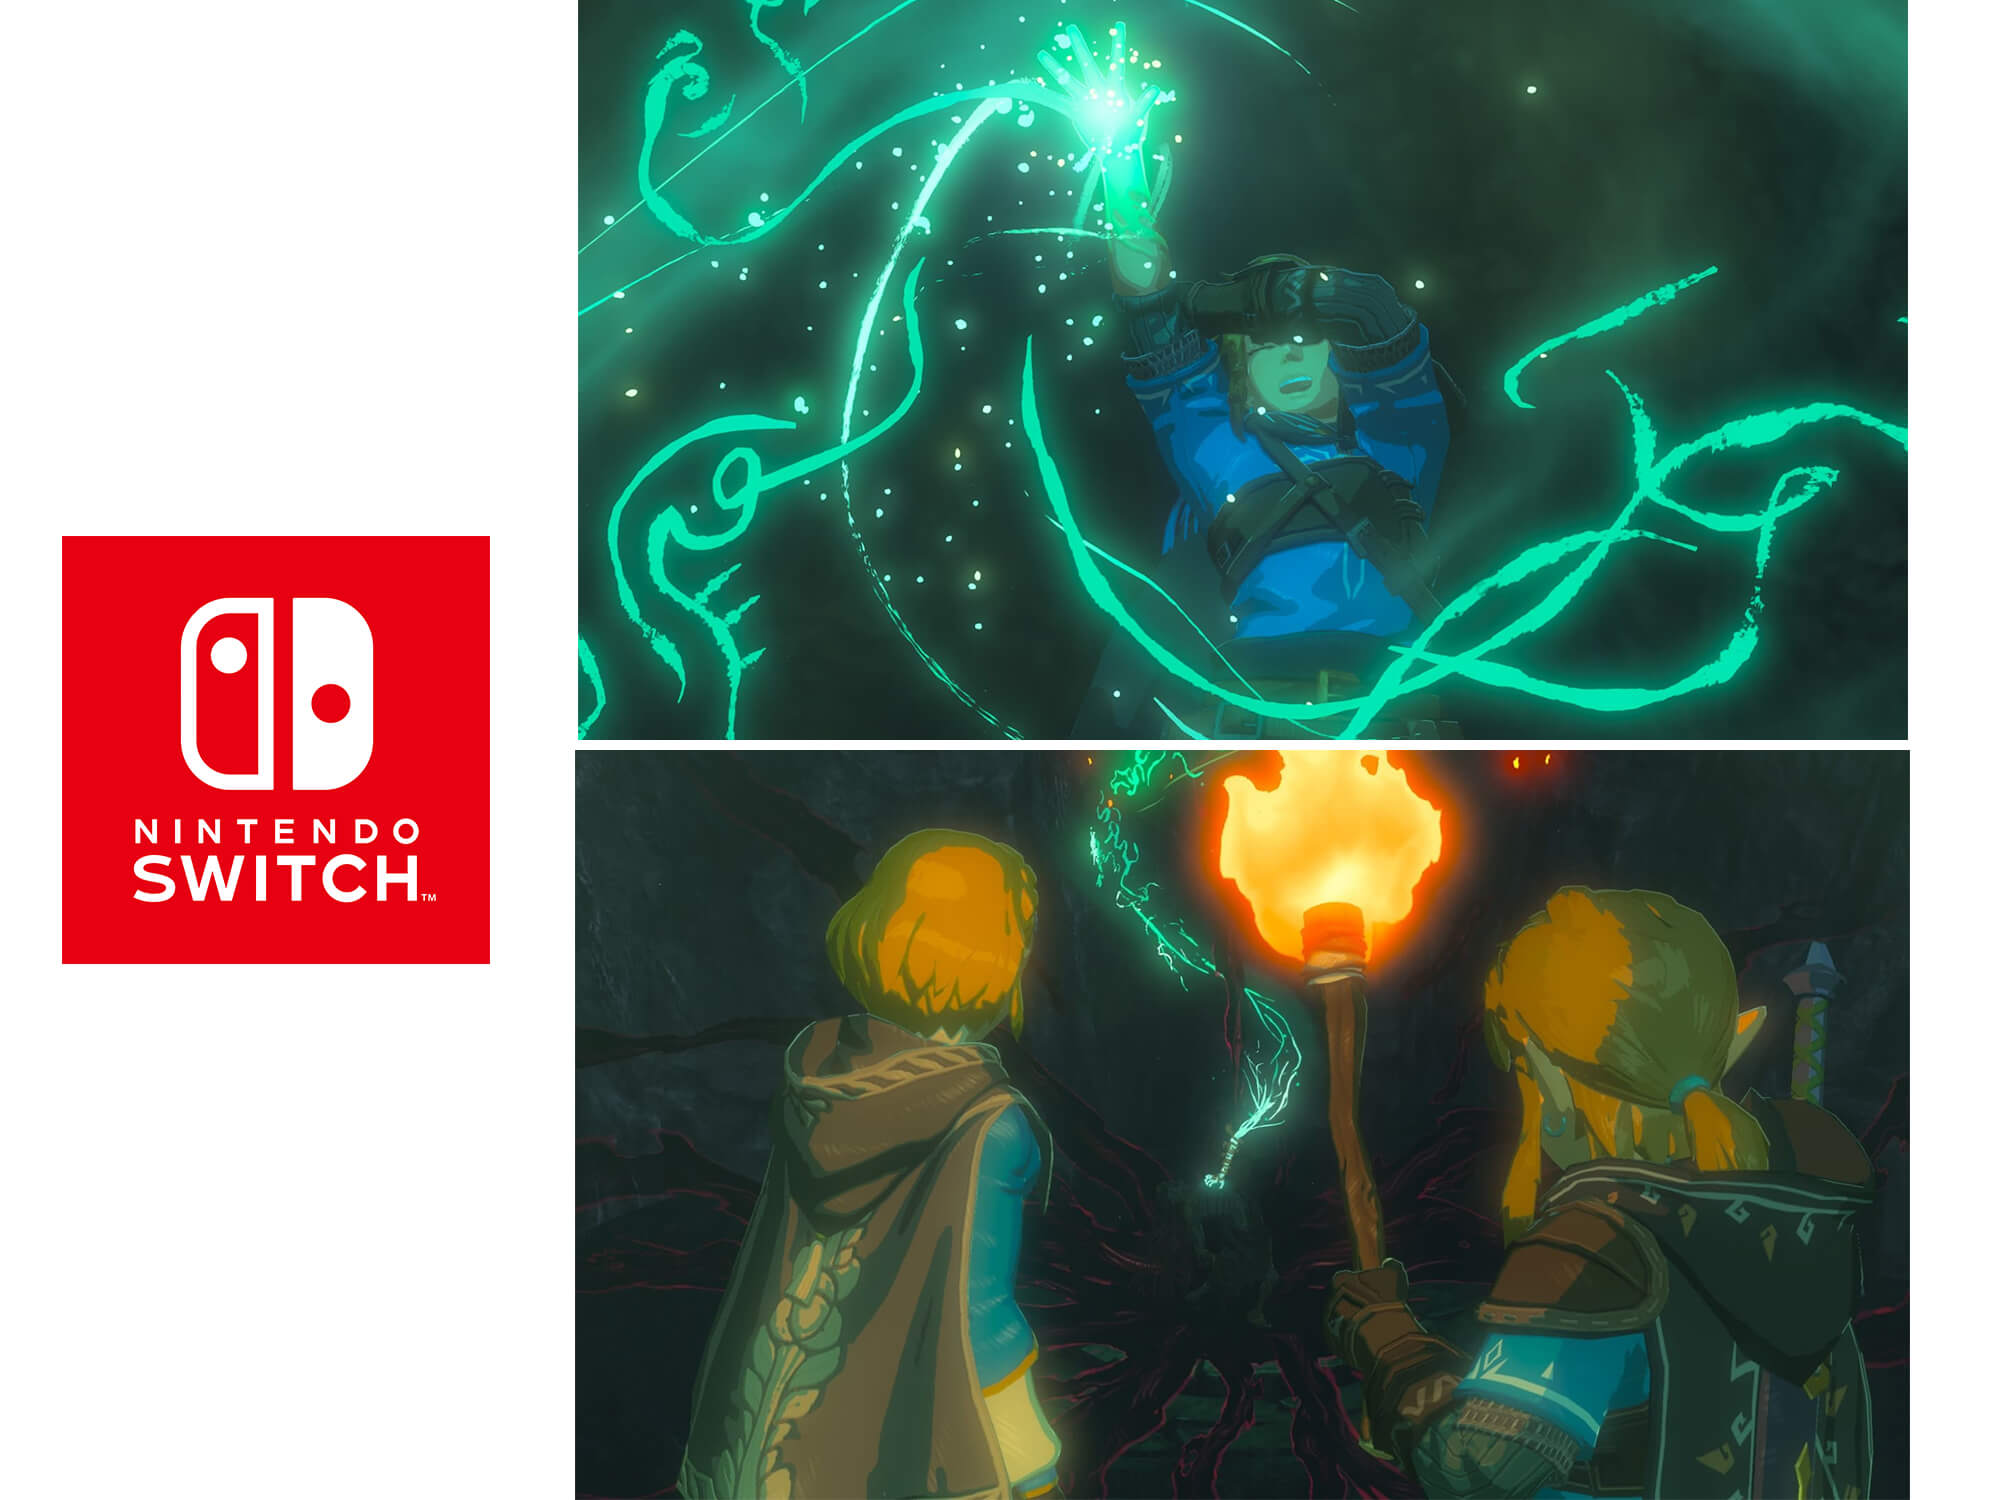 The sequel to The Legend of Zelda: Breath of the Wild